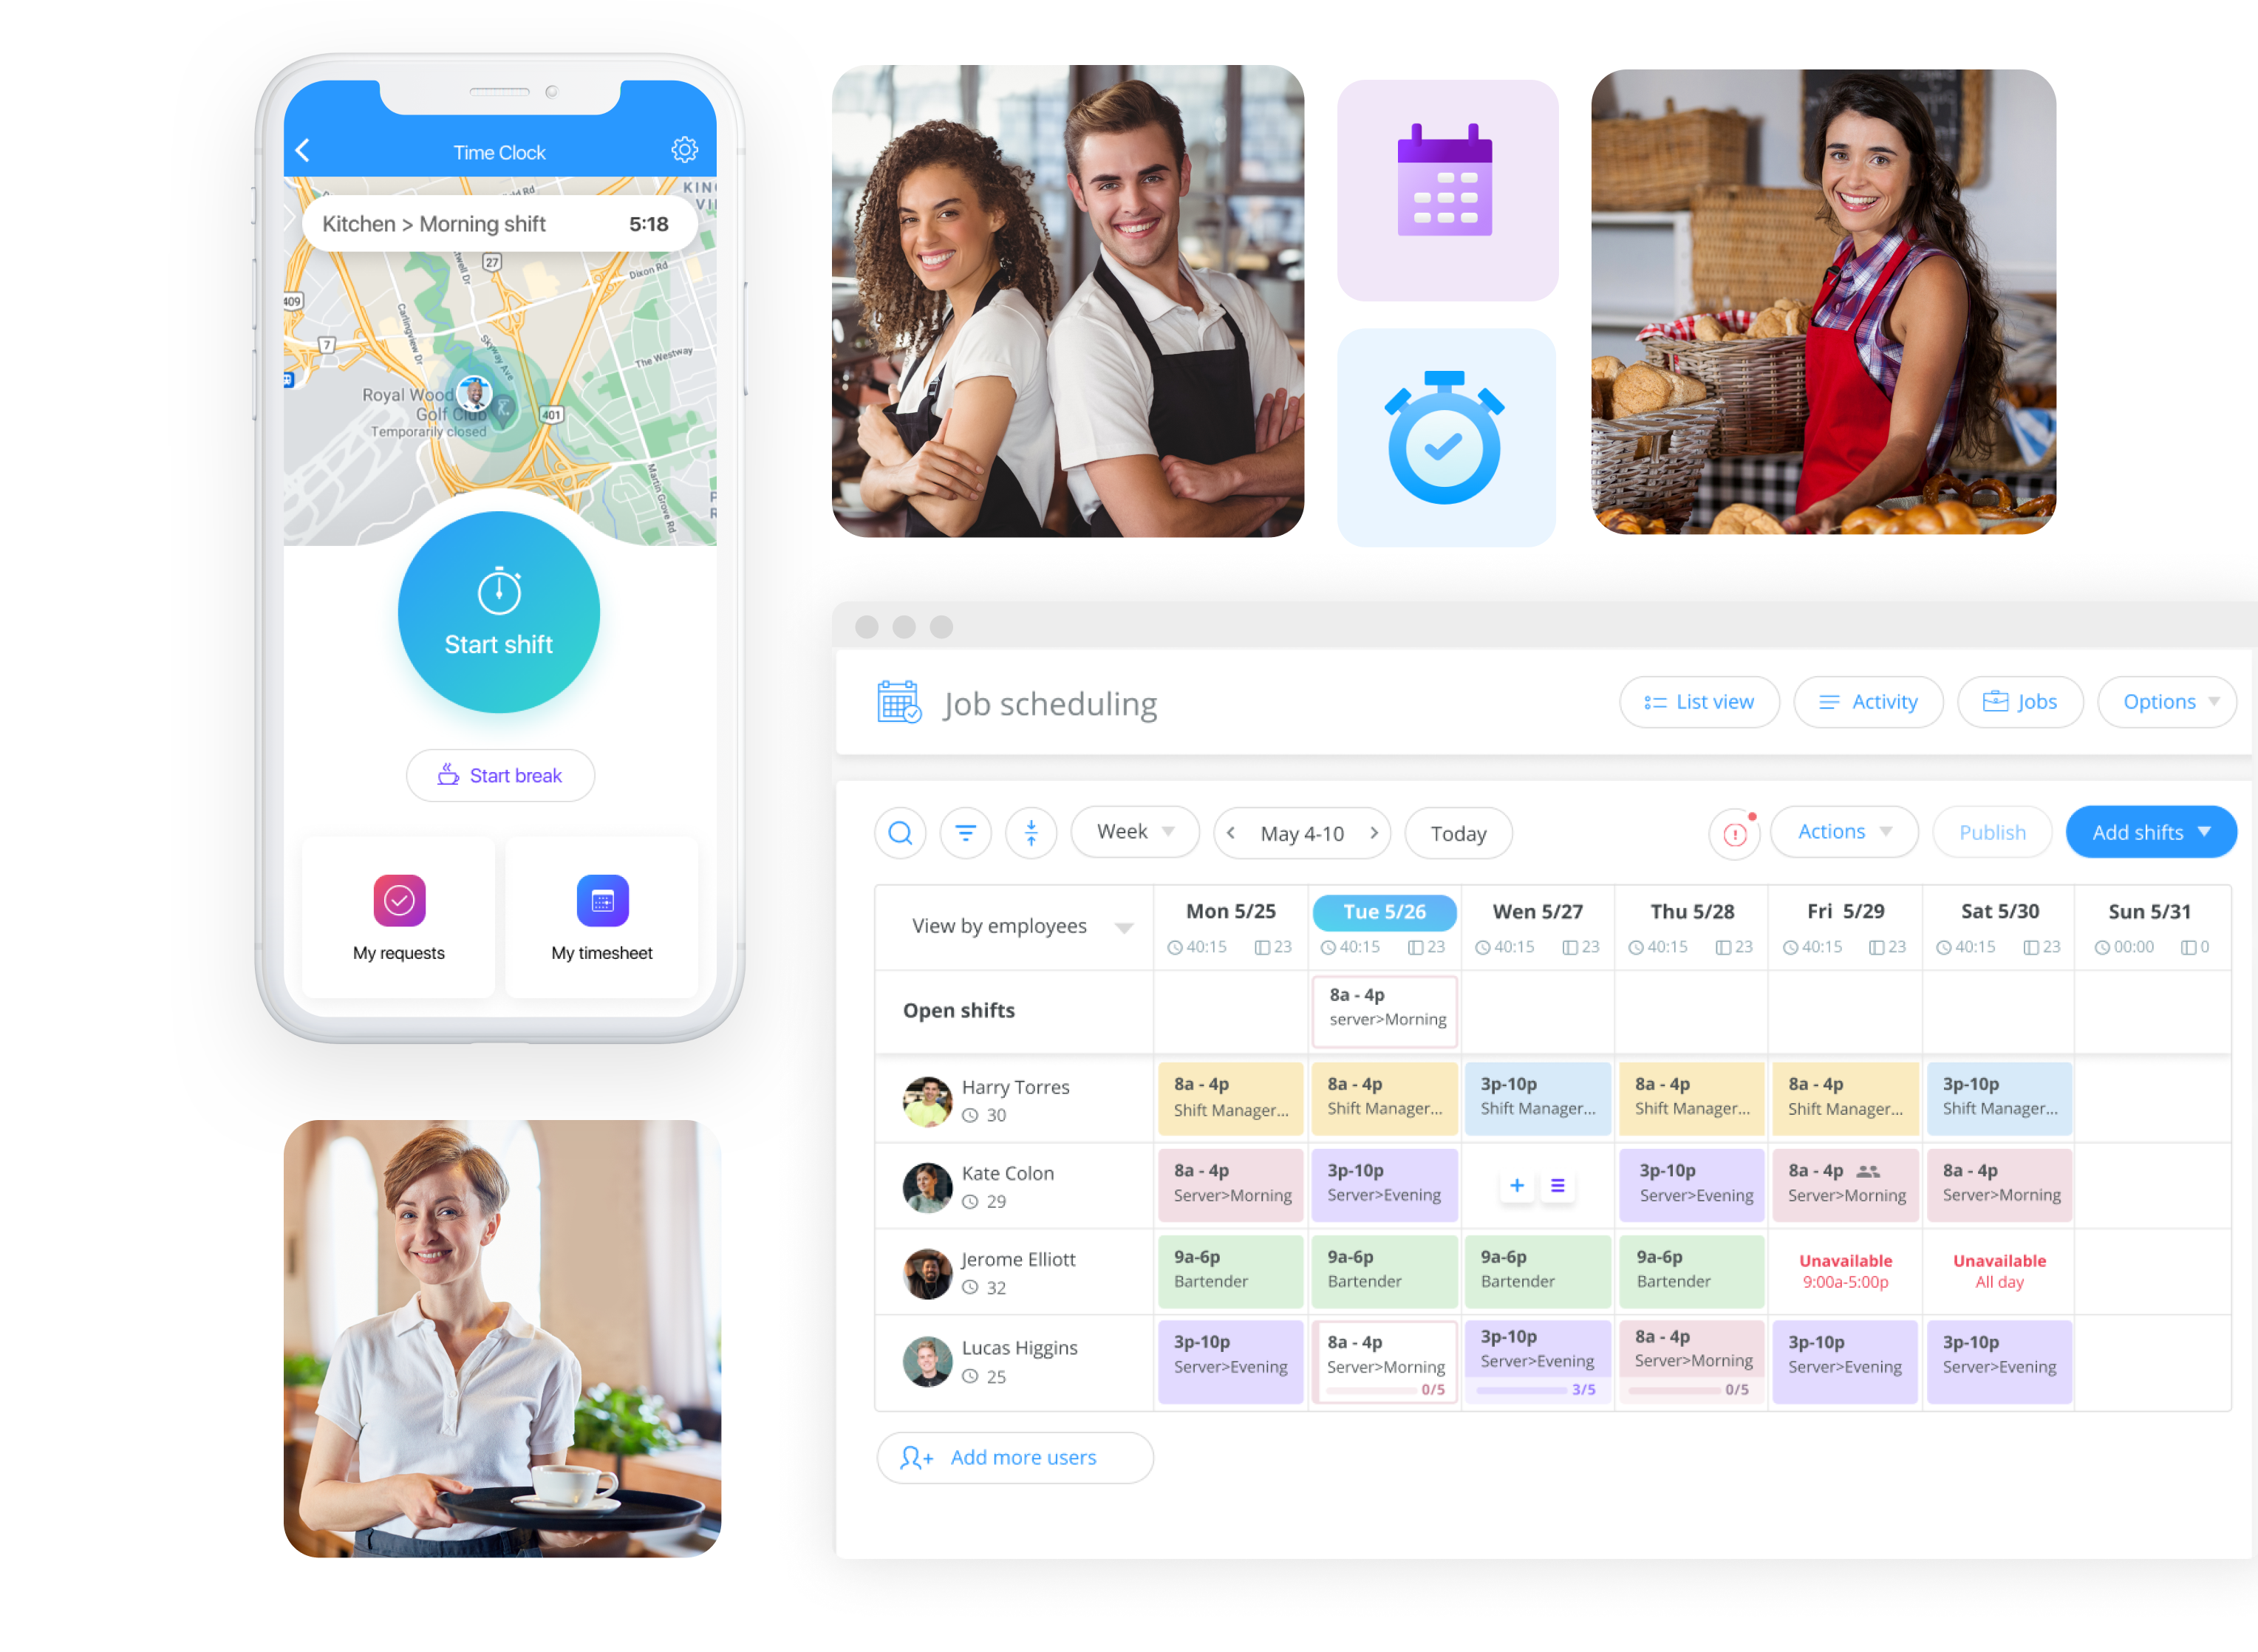 Food and beverage employee management app